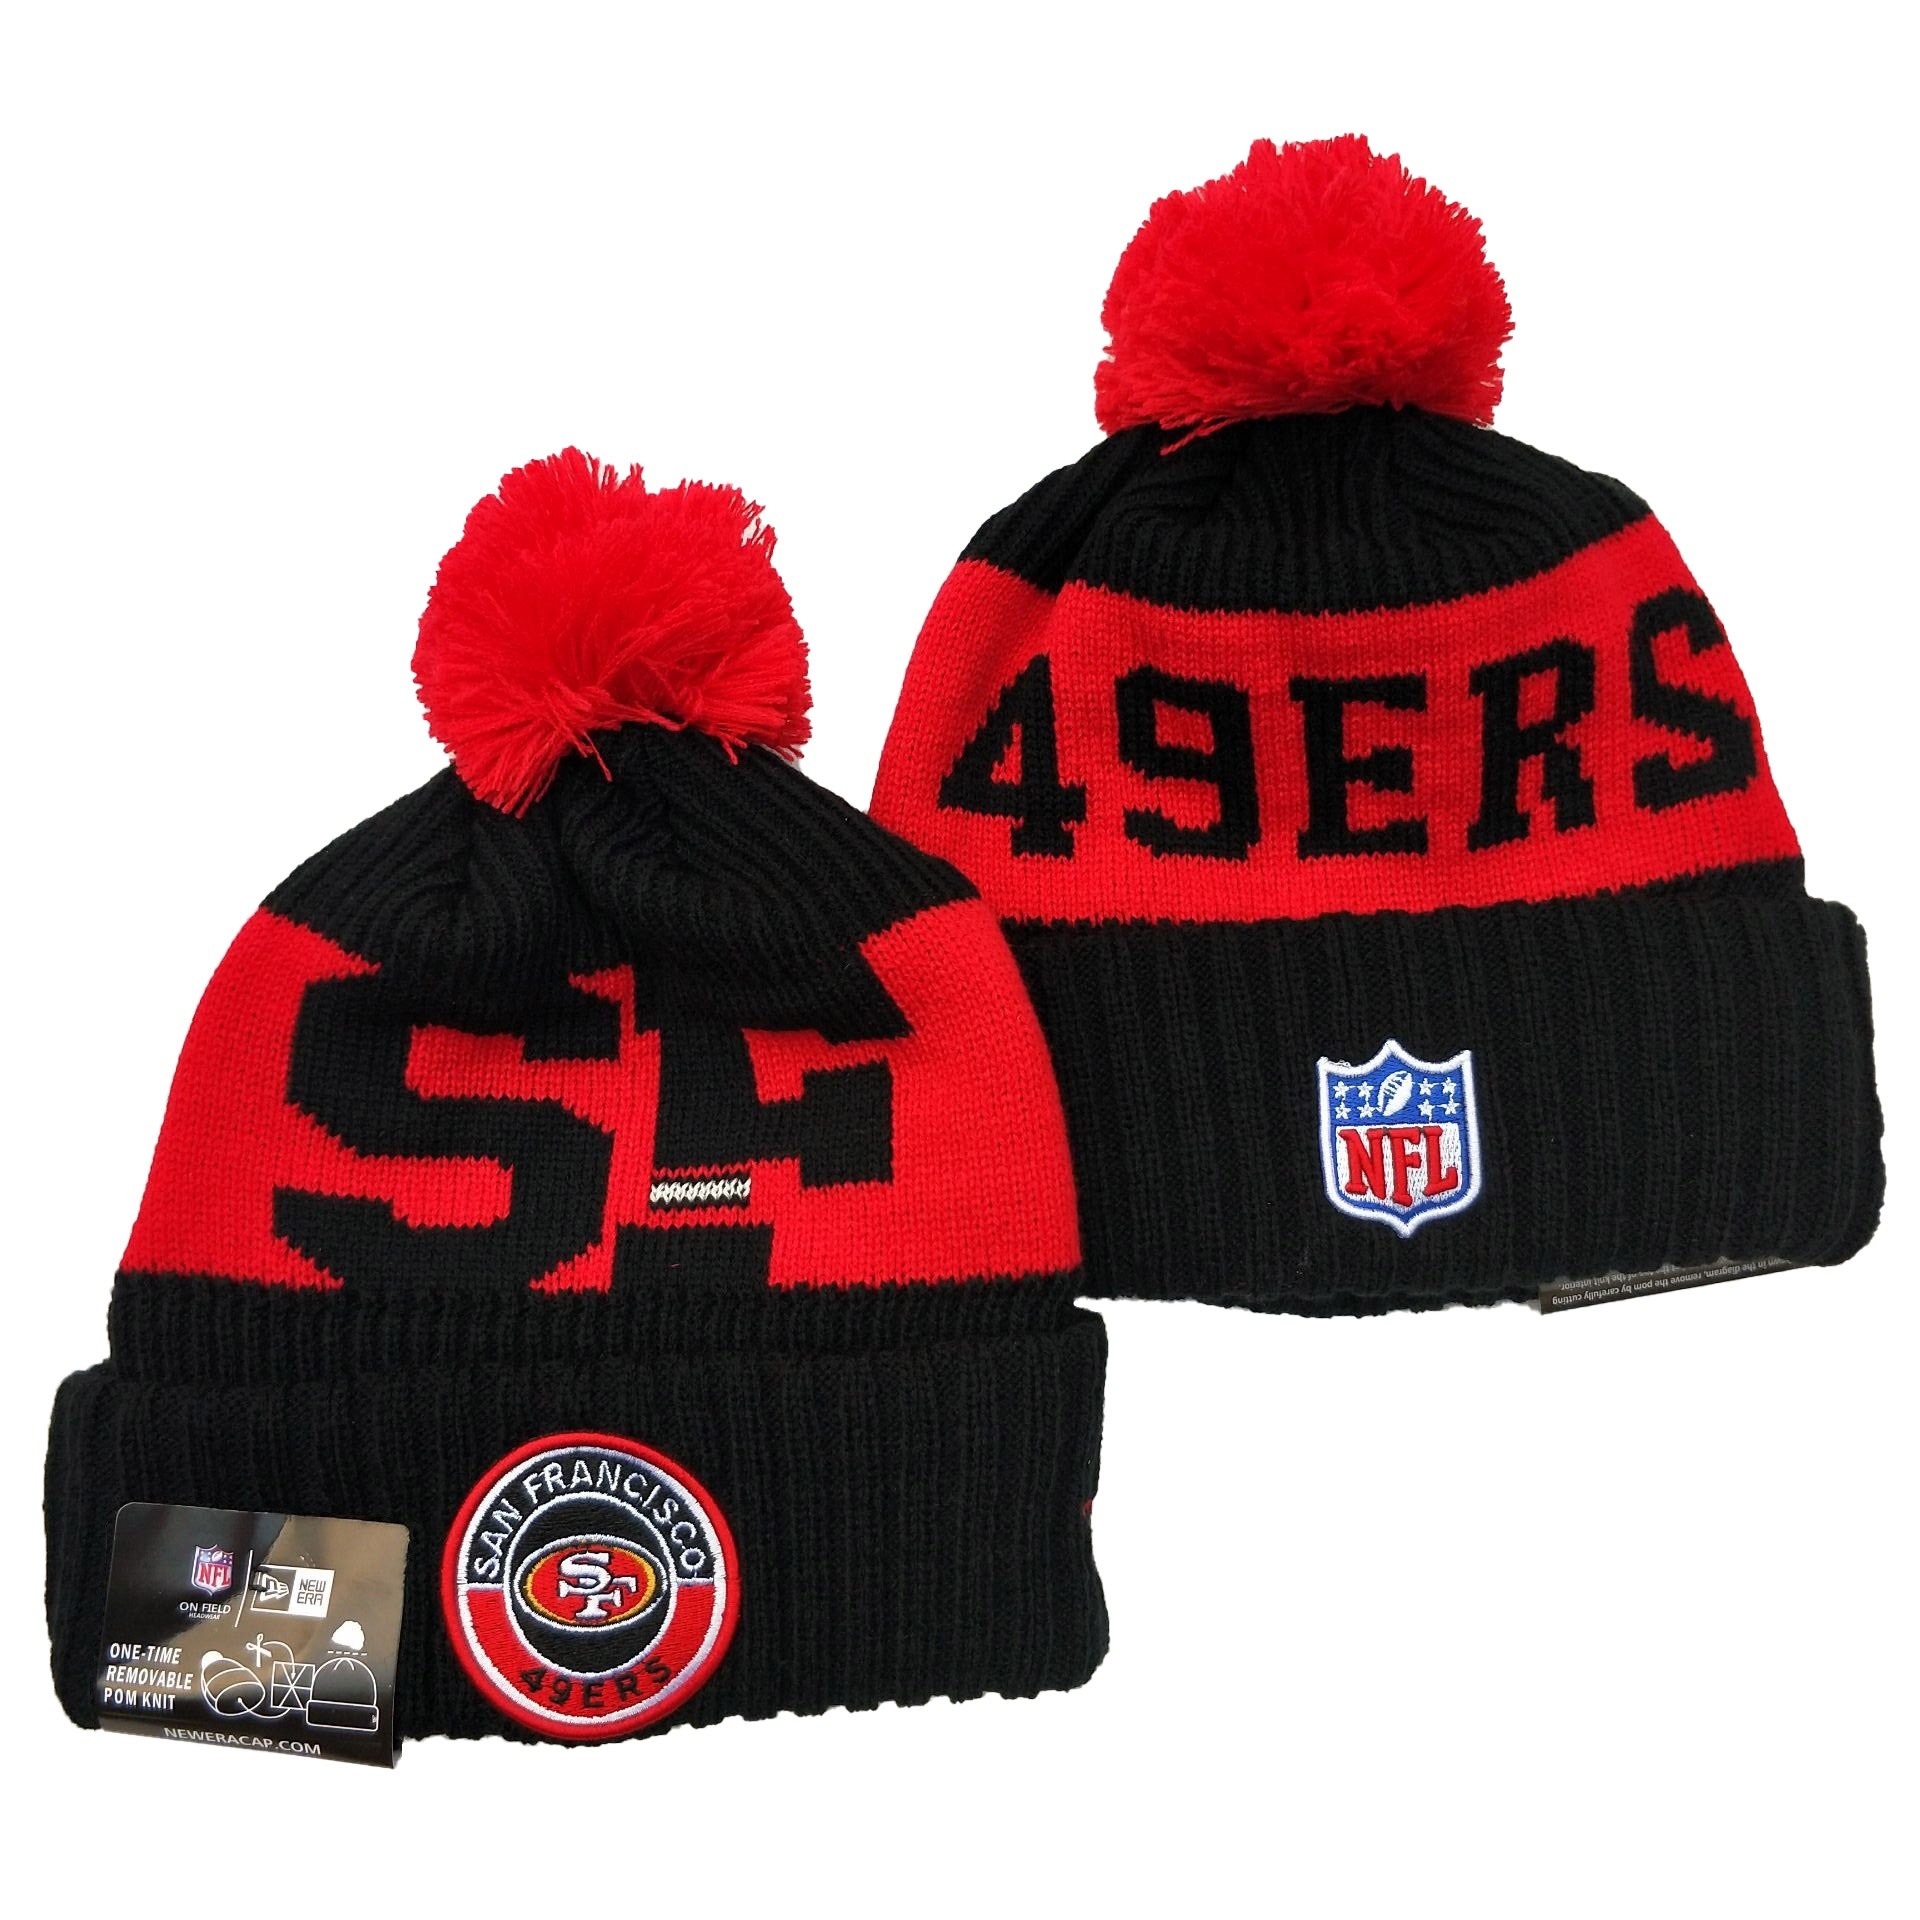 49ers Team Logo Black Red 2020 NFL Sideline Pom Cuffed Knit Hat YD